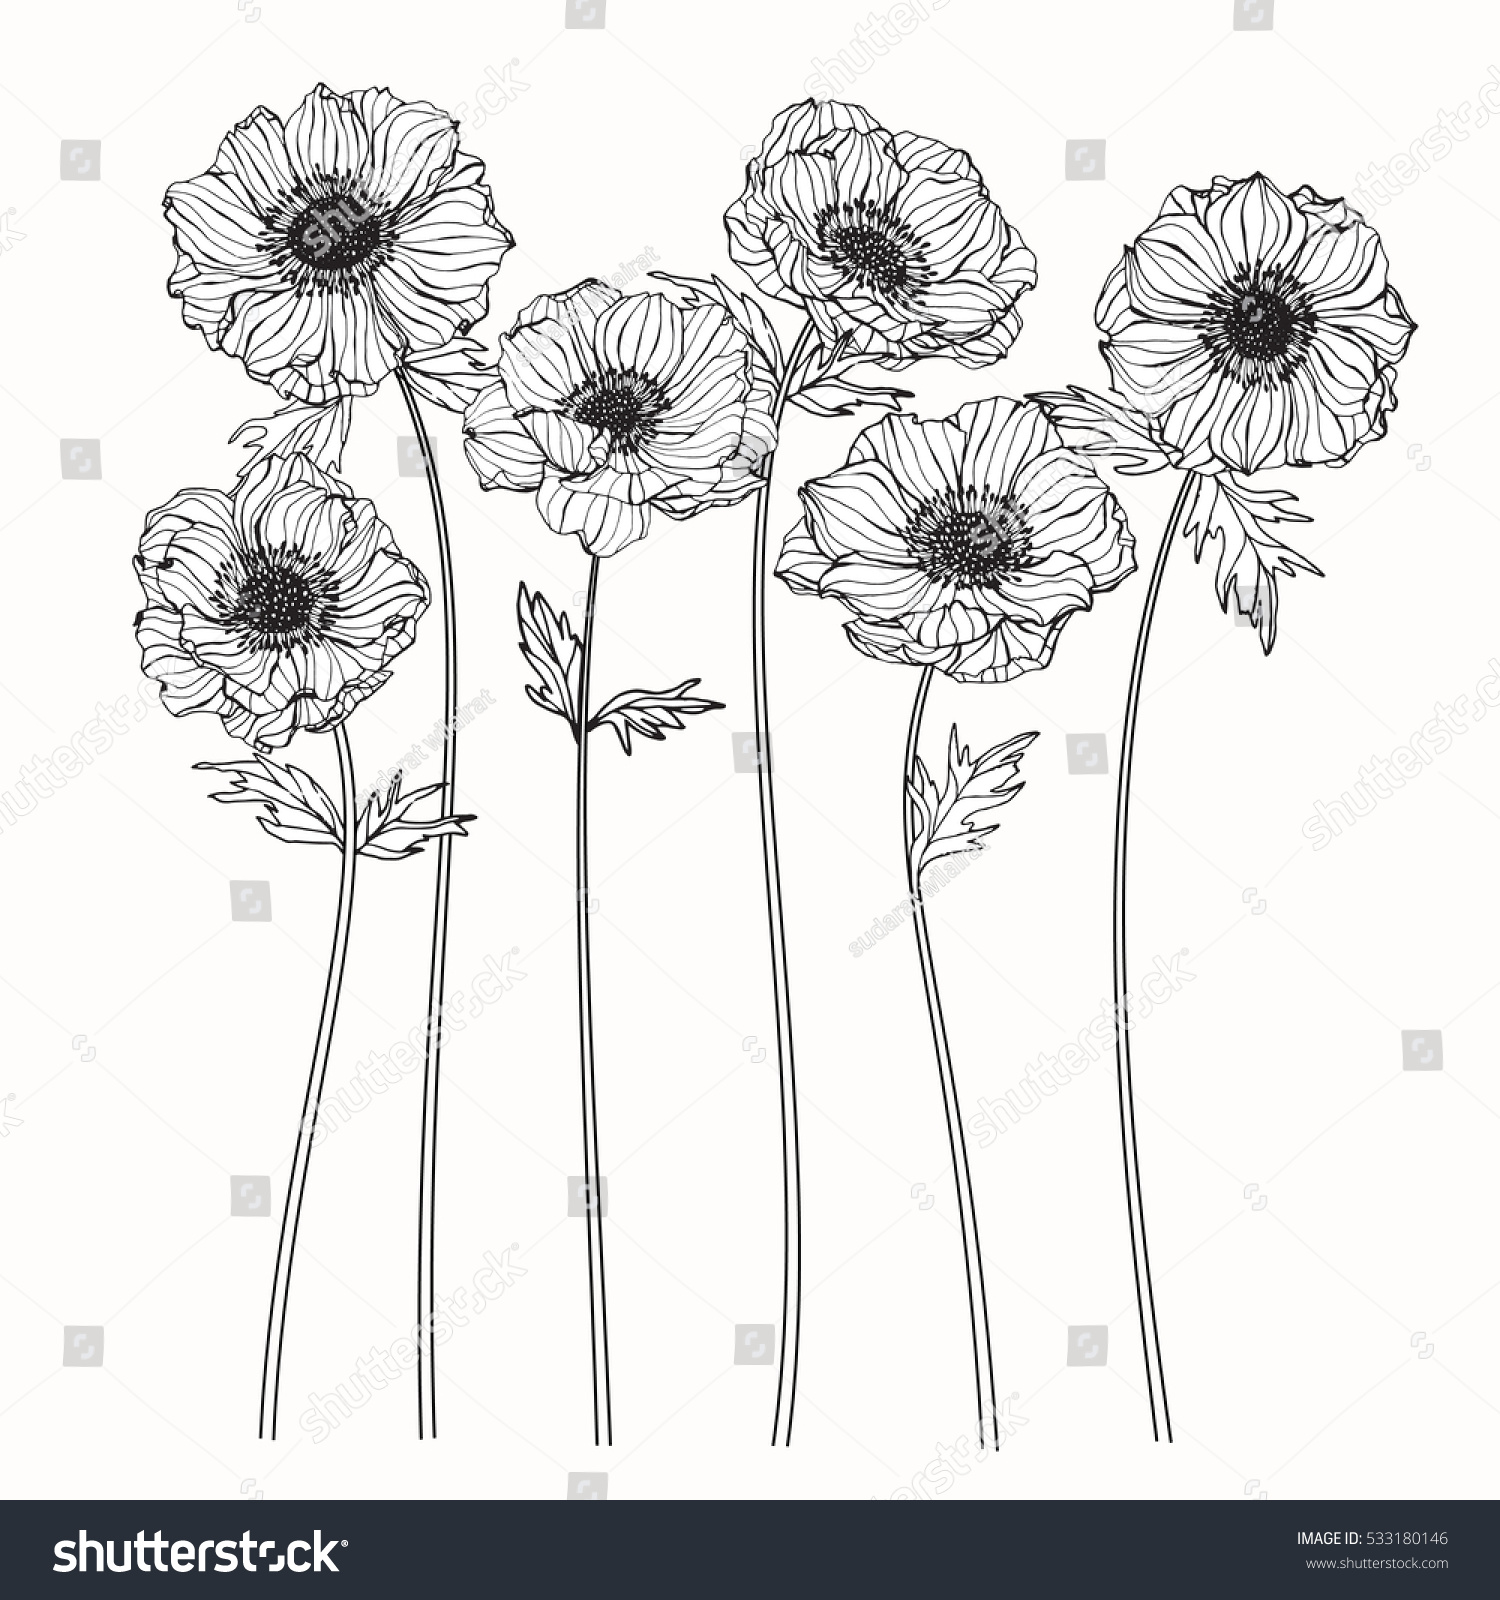 Anemone Flower Line Drawing : Drawing anemone flower on white backgrounds stock vector